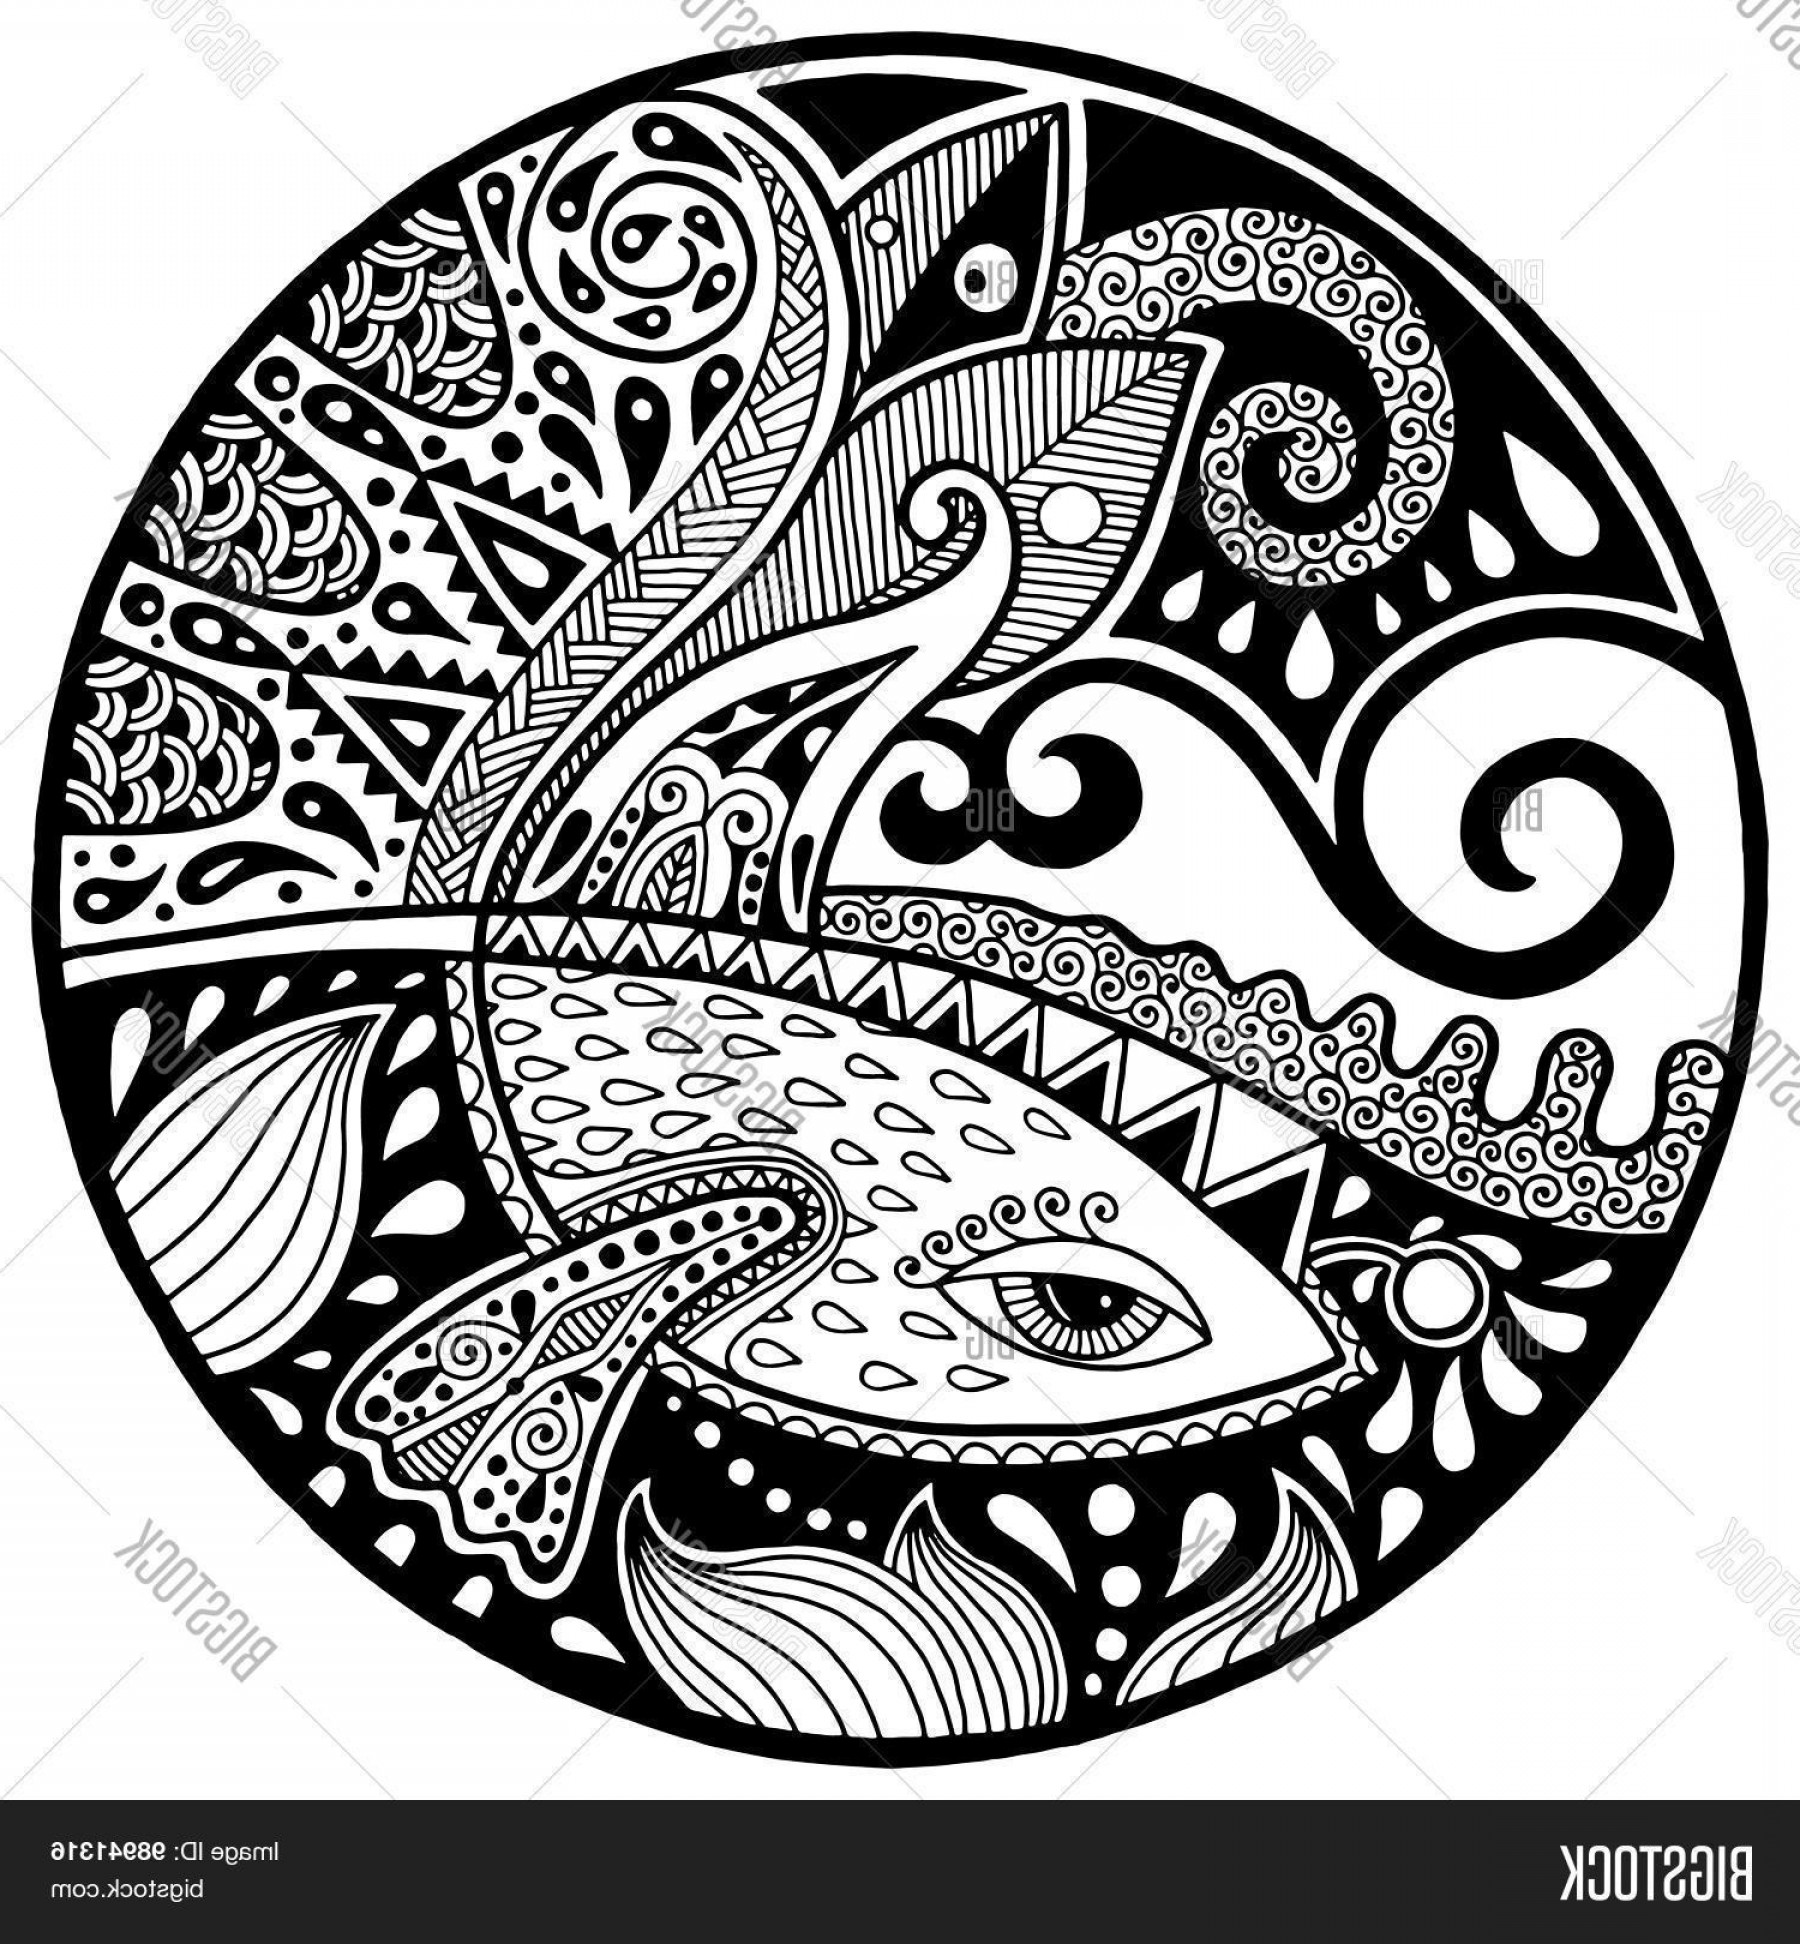 Black And White Circle Vector Graphics: Stock Vector Black White Abstract Zendala With Fish And Waves On Circle